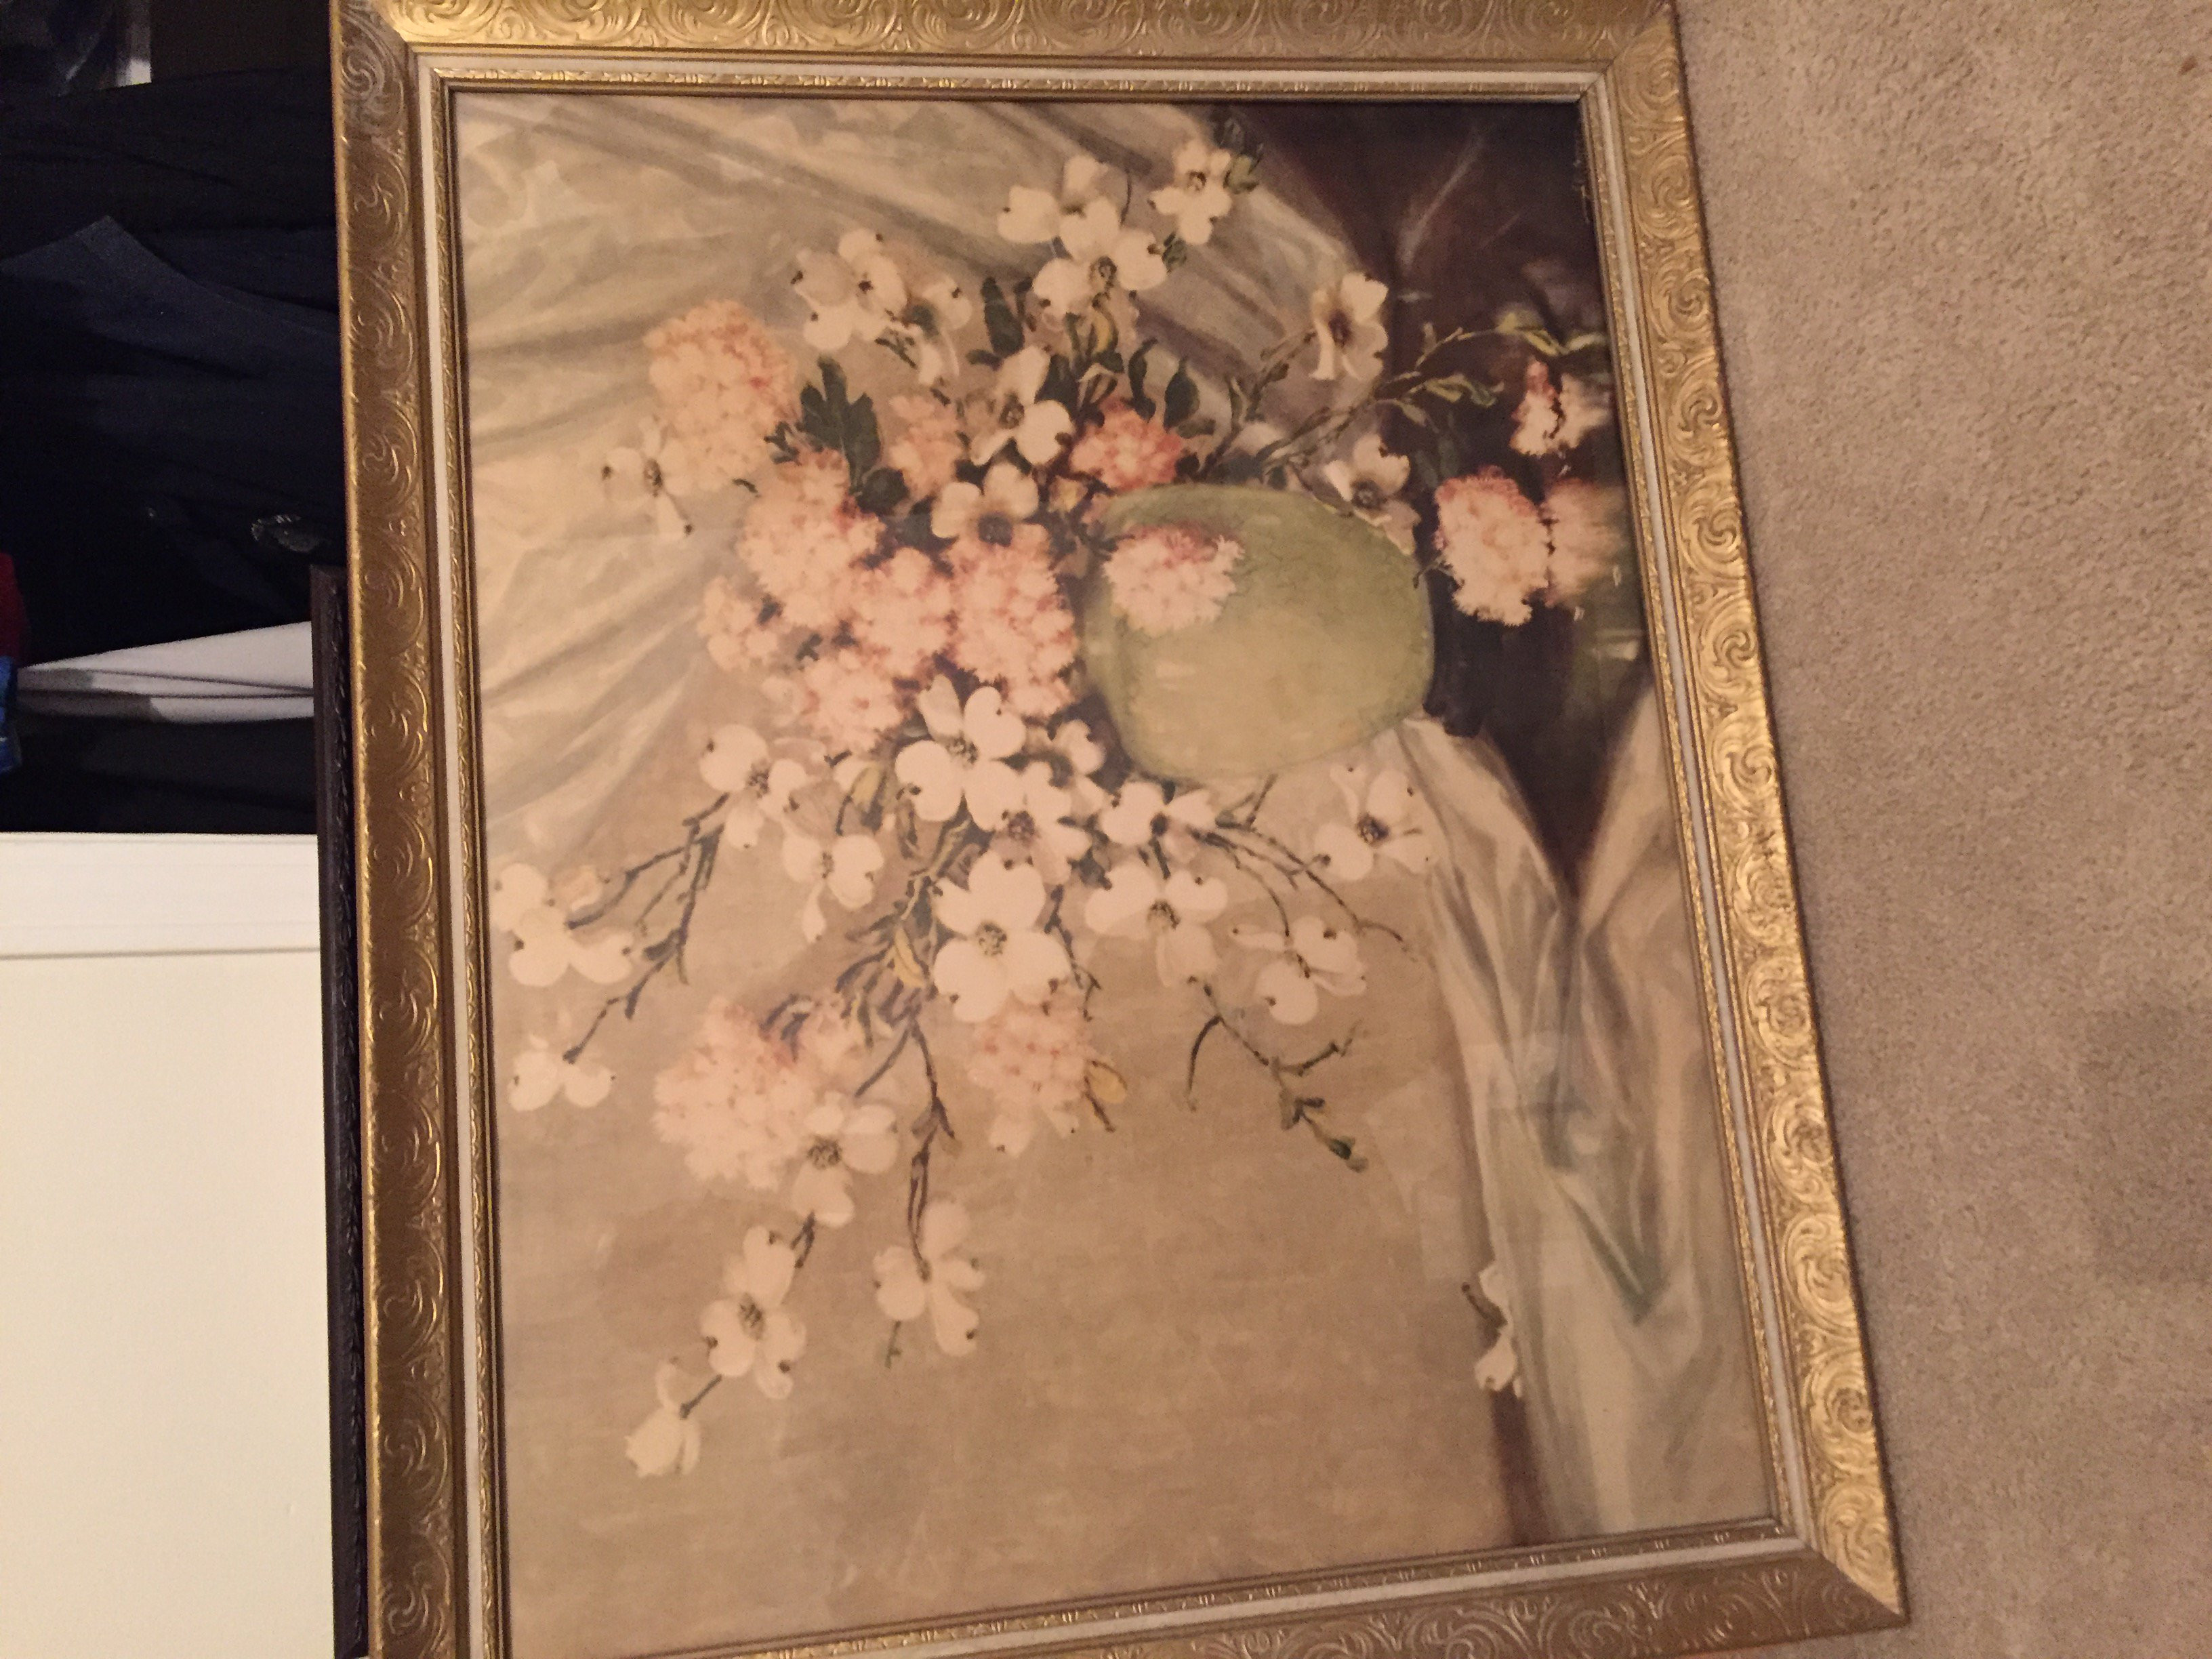 roseville water lily vase of i have a painting by a d greer light vase with flowers and buds pertaining to image